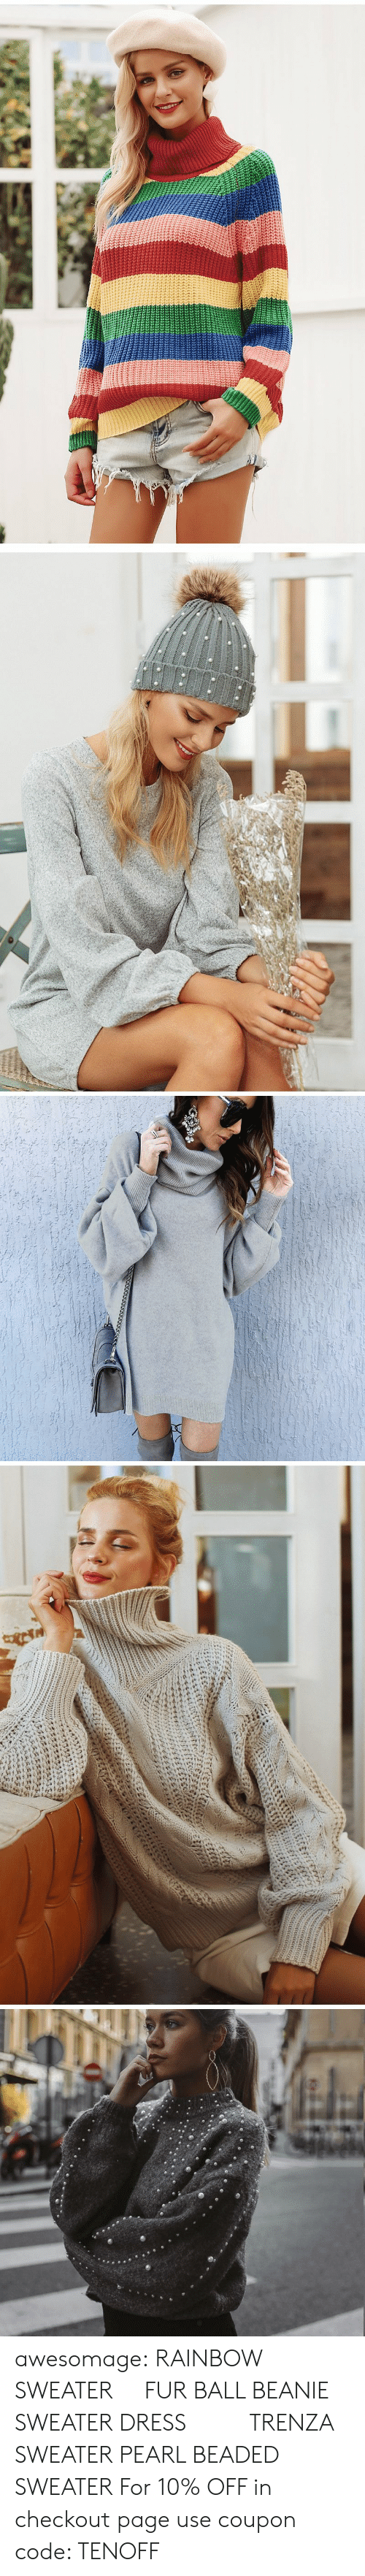 lantern: awesomage:  RAINBOW SWEATER   FUR BALL BEANIE  SWEATER DRESS     TRENZA SWEATER  PEARL BEADED SWEATER  For 10% OFF in checkout page use coupon code: TENOFF